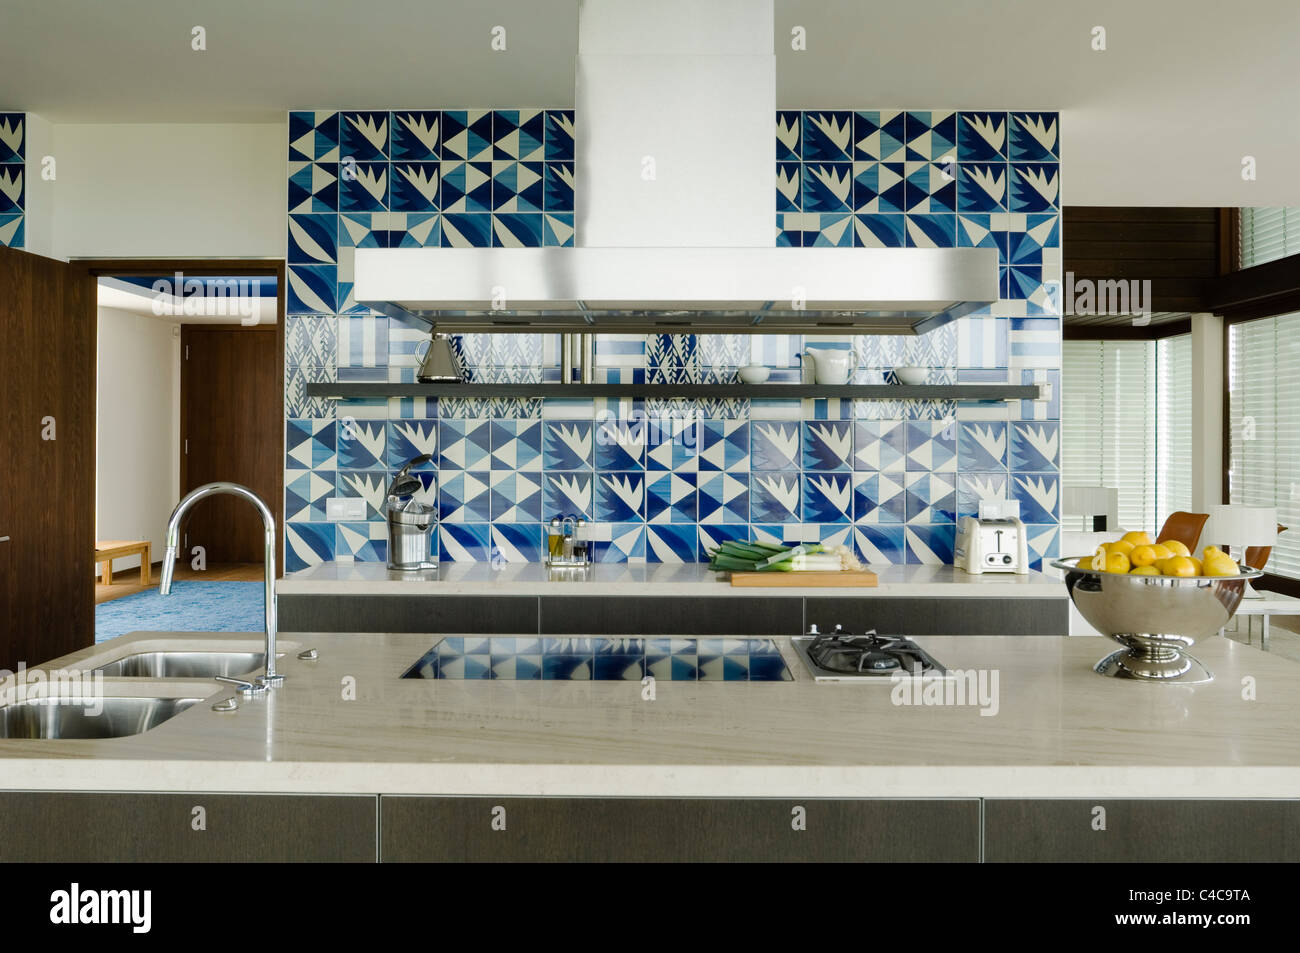 Kitchen Taps Stock Photos & Kitchen Taps Stock Images - Alamy